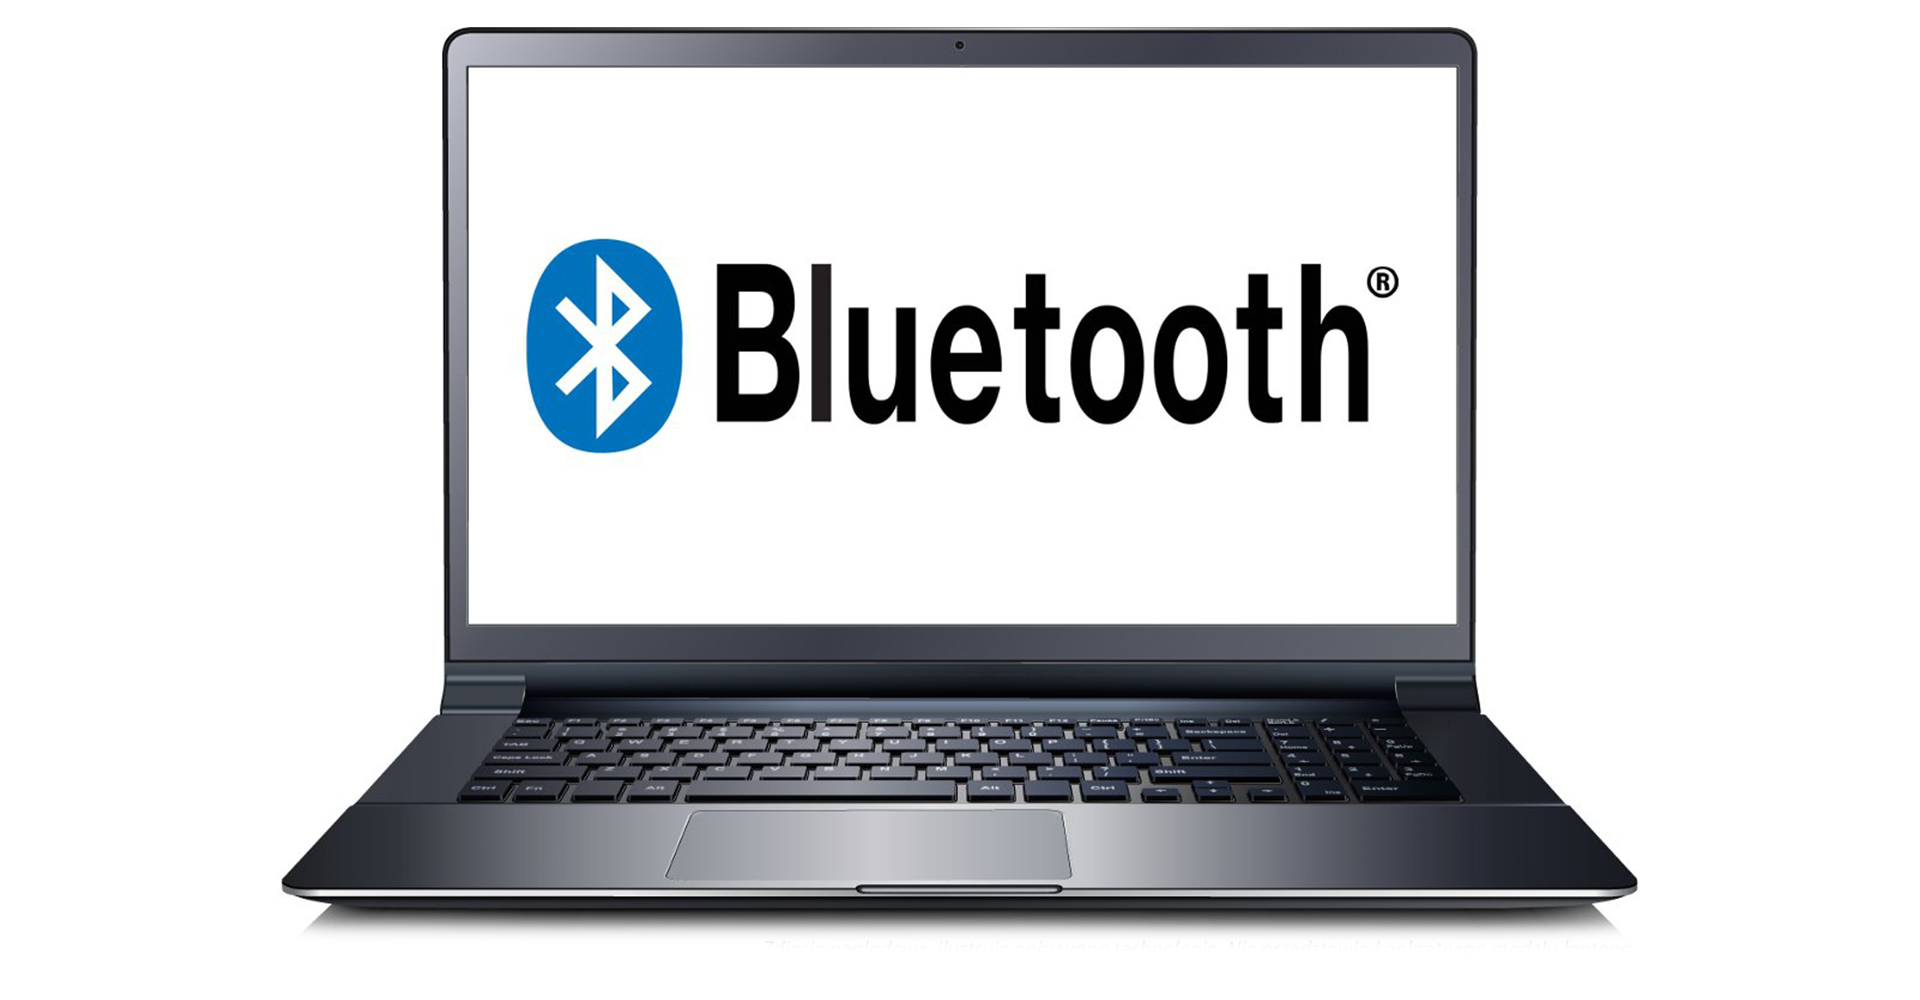 Apple MacBook Pro 13 Retina (MPXQ2ZE/A)                             Bluetooth